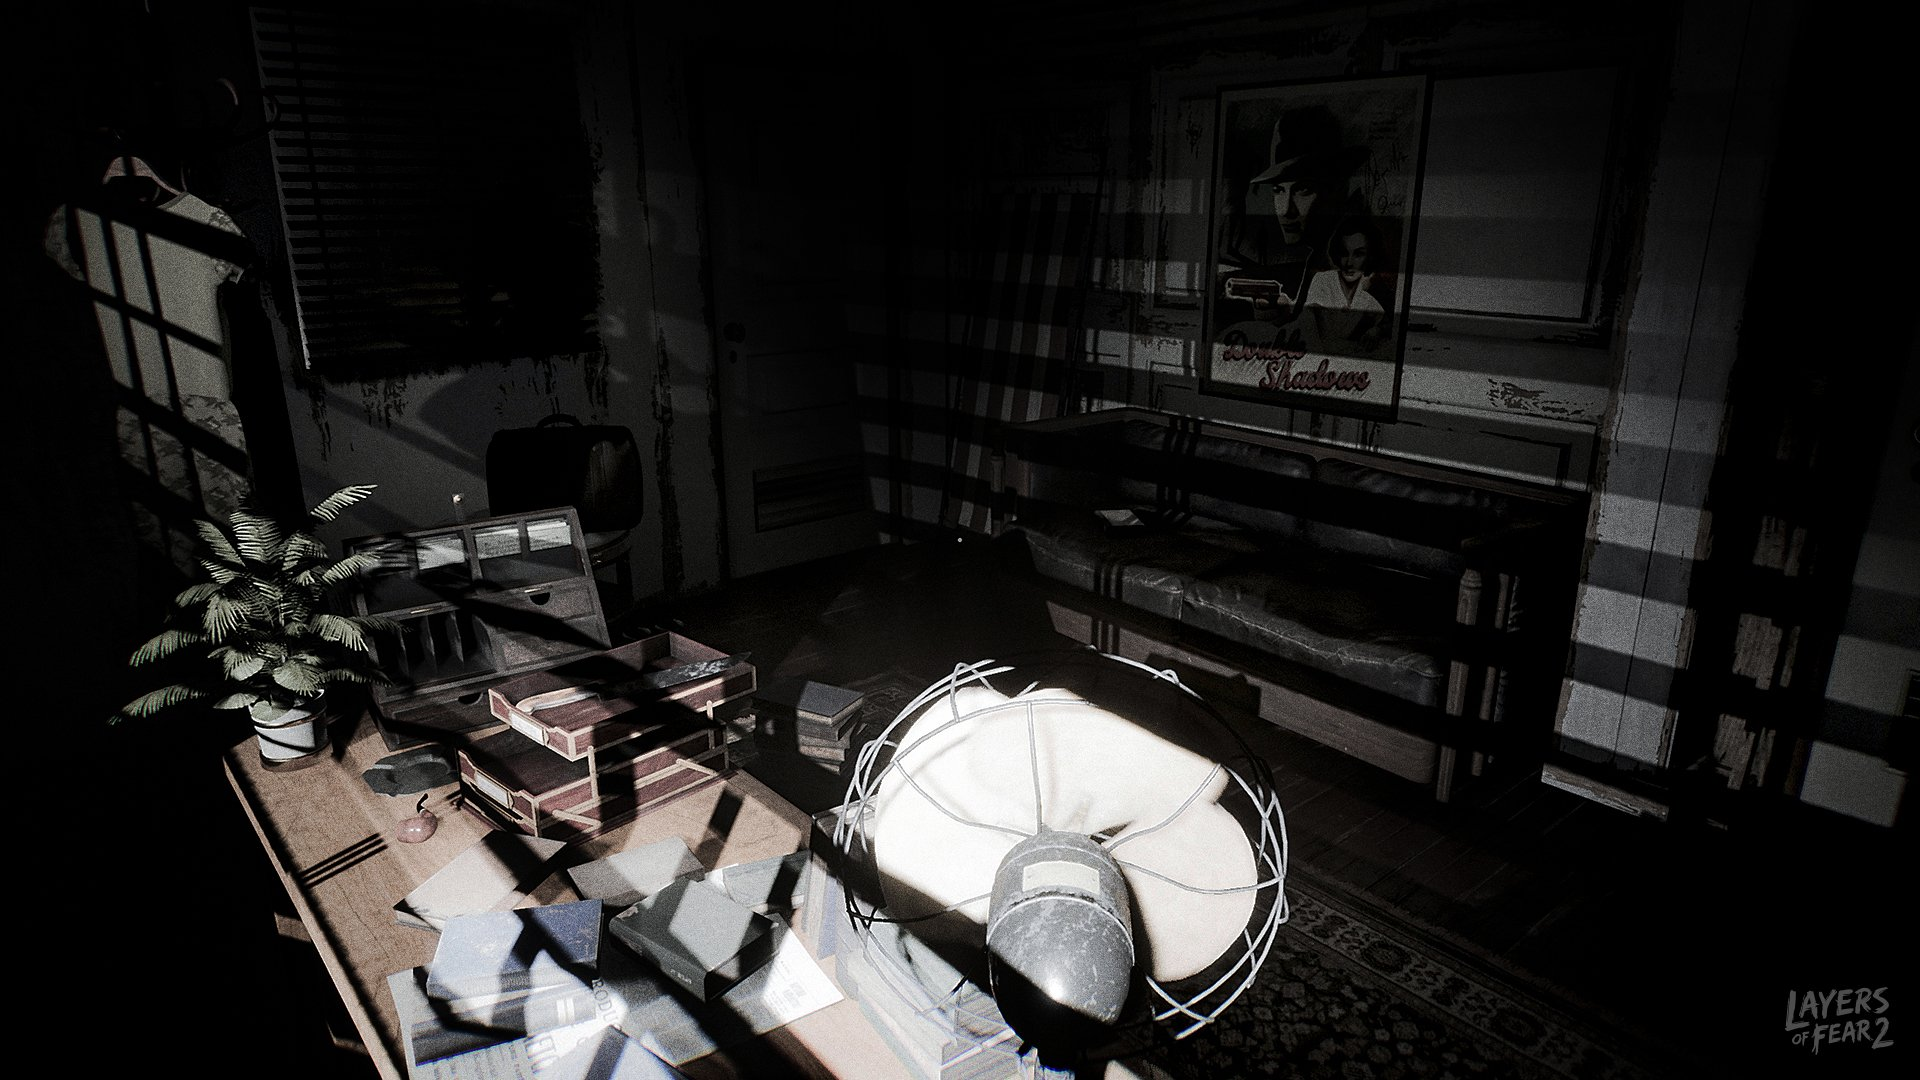 Layers of Fear 2 Trailer Released